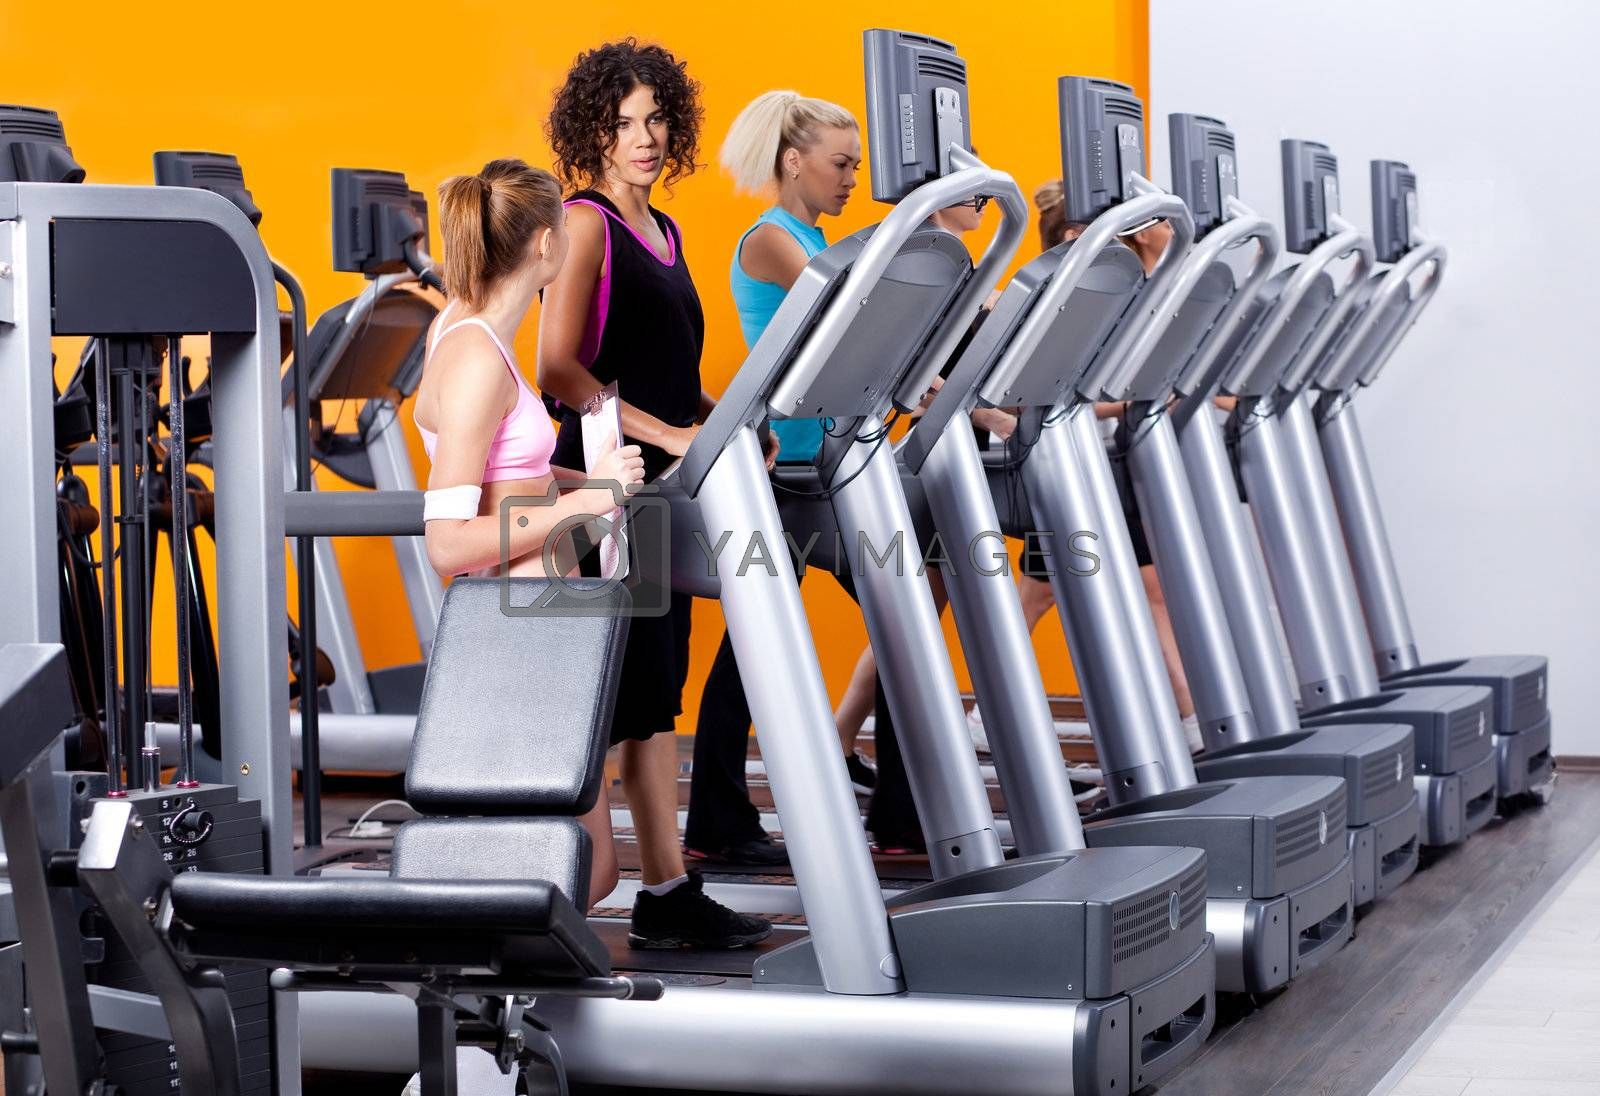 lady instructor providimh training to ladies in gym